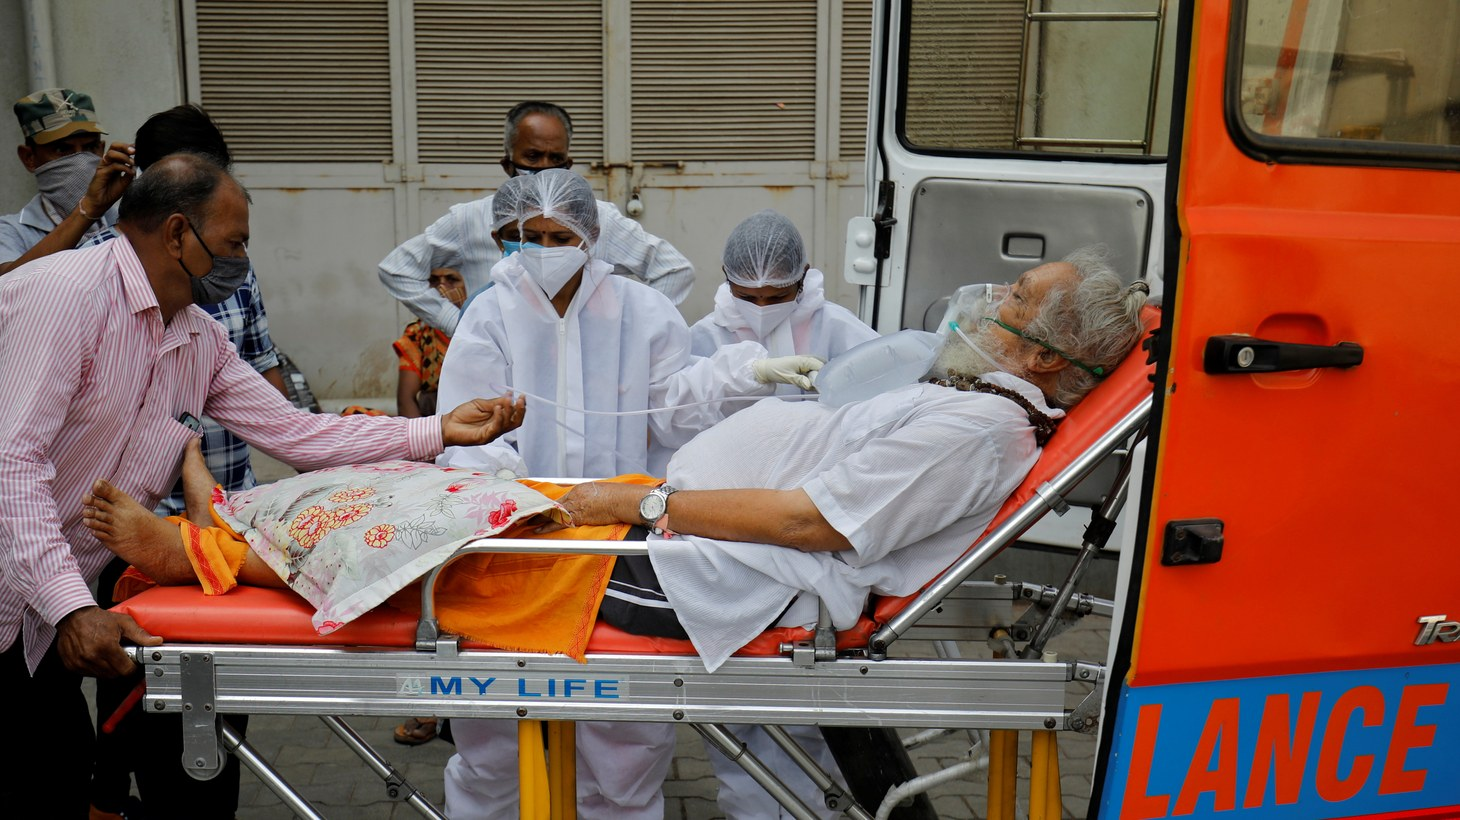 A patient wearing an oxygen mask is wheeled inside a COVID-19 hospital for treatment, amidst the spread of the coronavirus disease (COVID-19) in Ahmedabad, India, April 26, 2021.